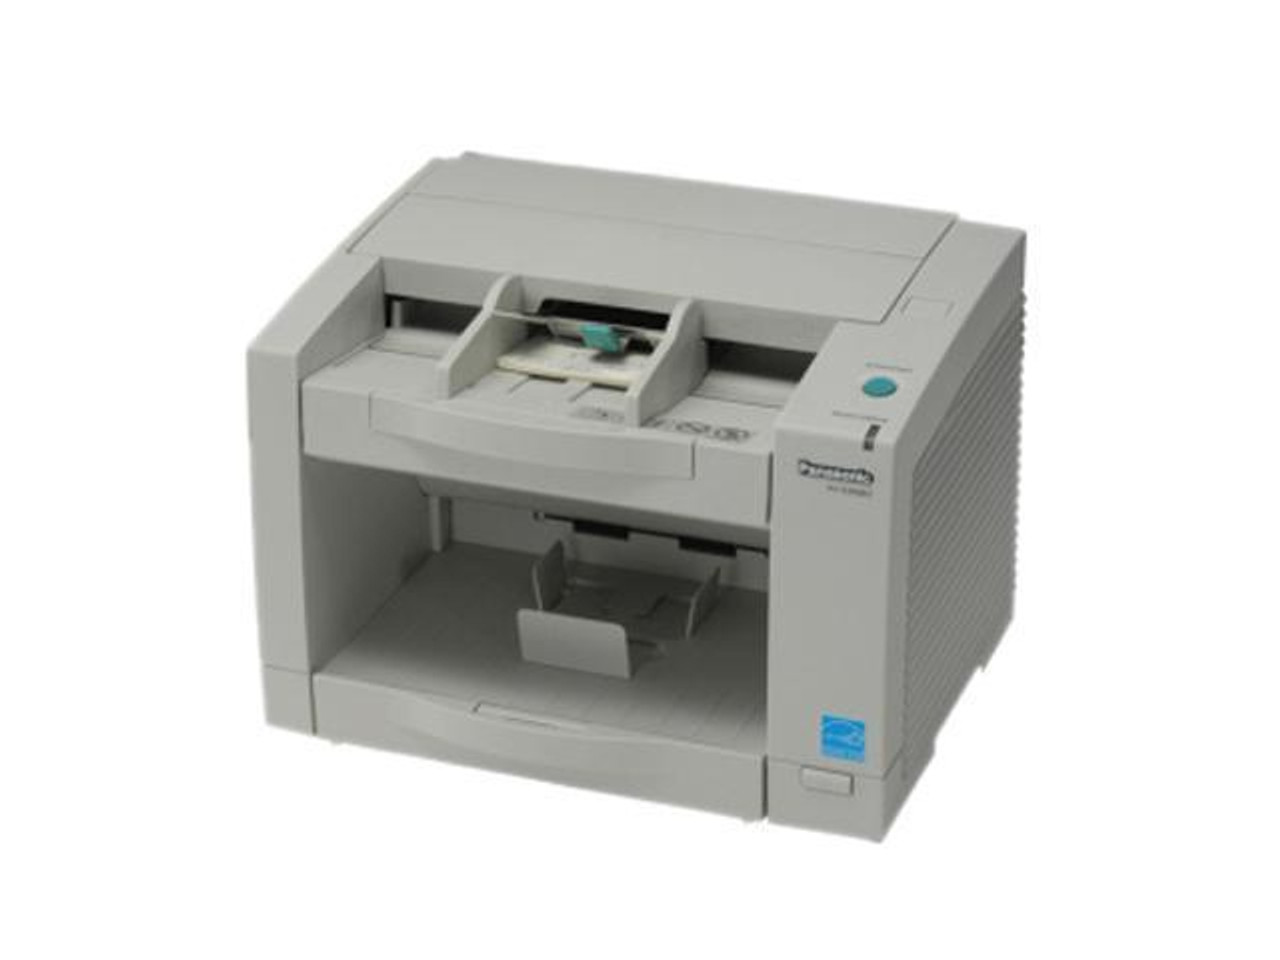 Panasonic KV-S2028C Document Scanner